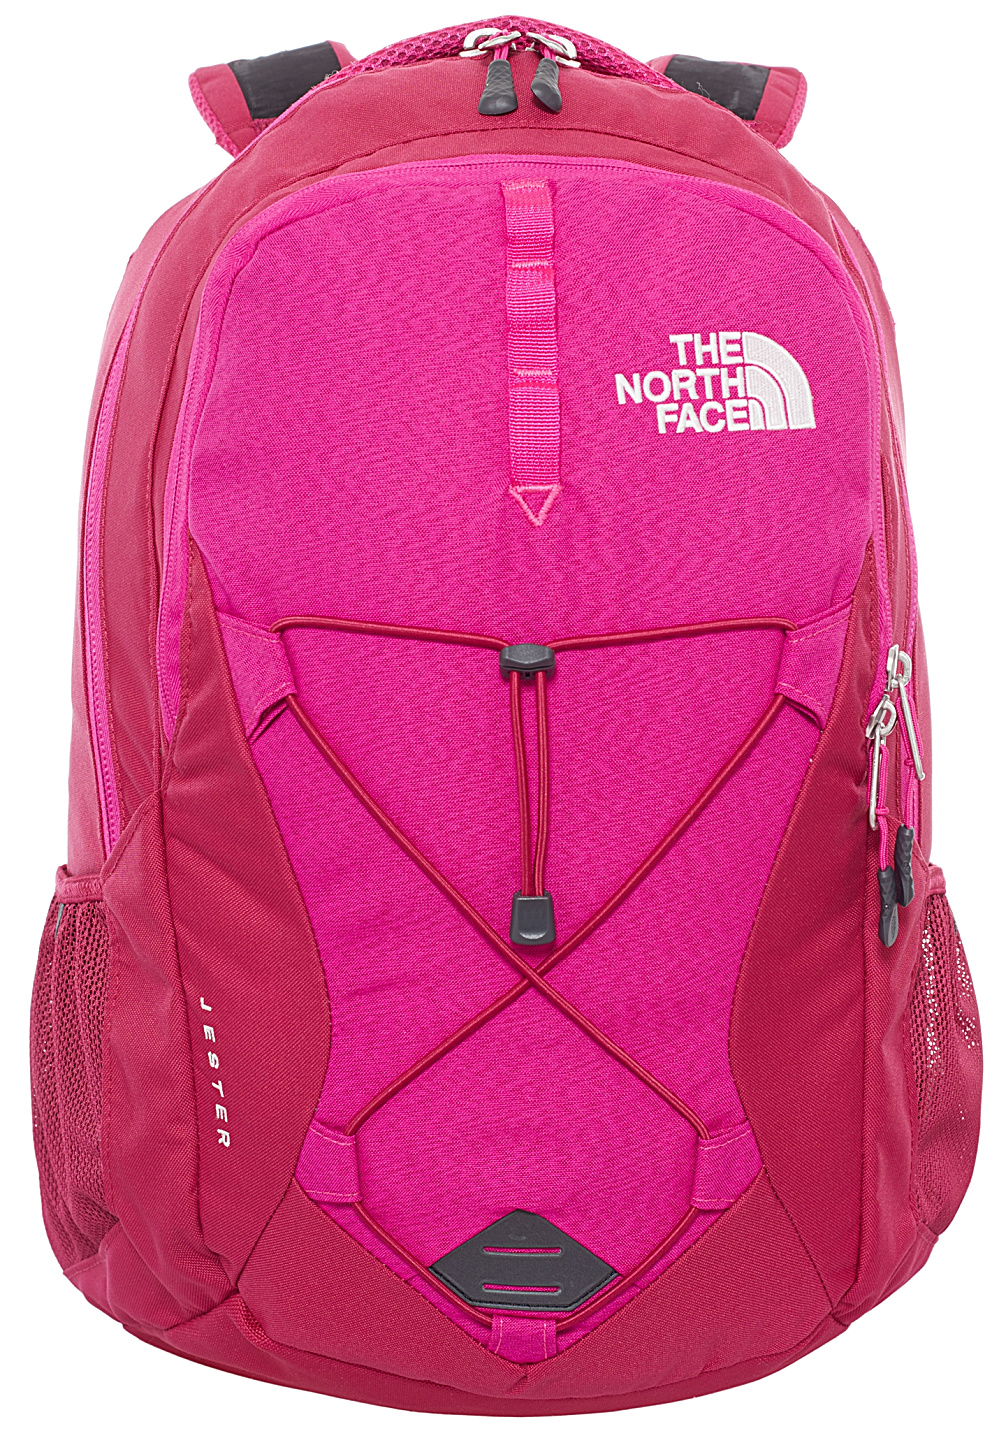 the north face jester sac dos pour femme rose planet sports. Black Bedroom Furniture Sets. Home Design Ideas